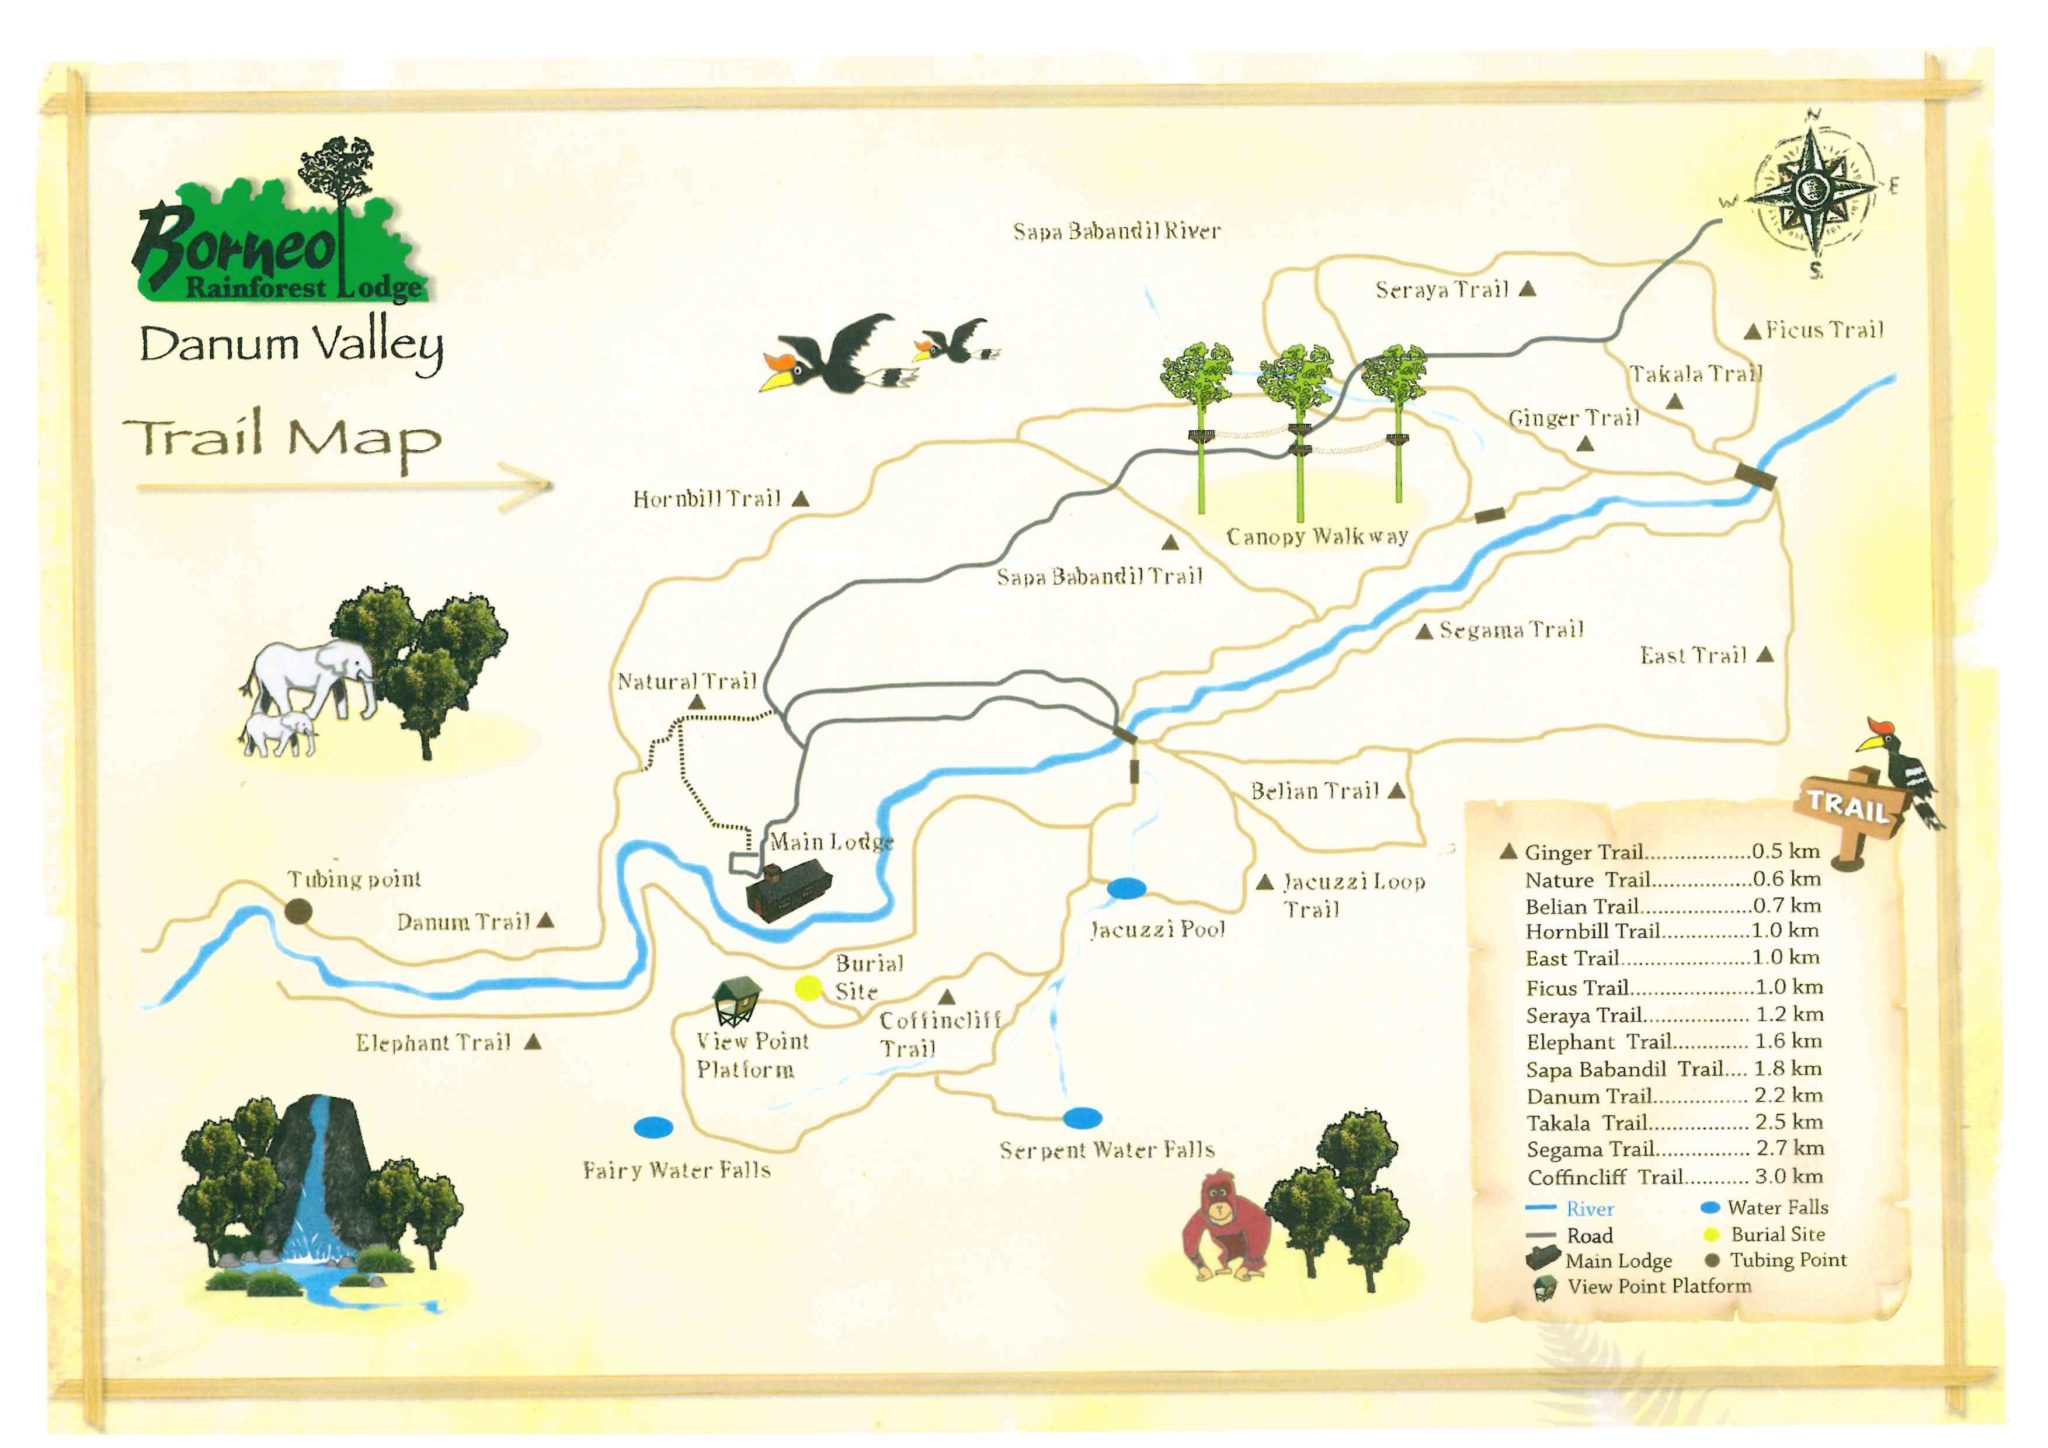 Danum Valley Trail Map